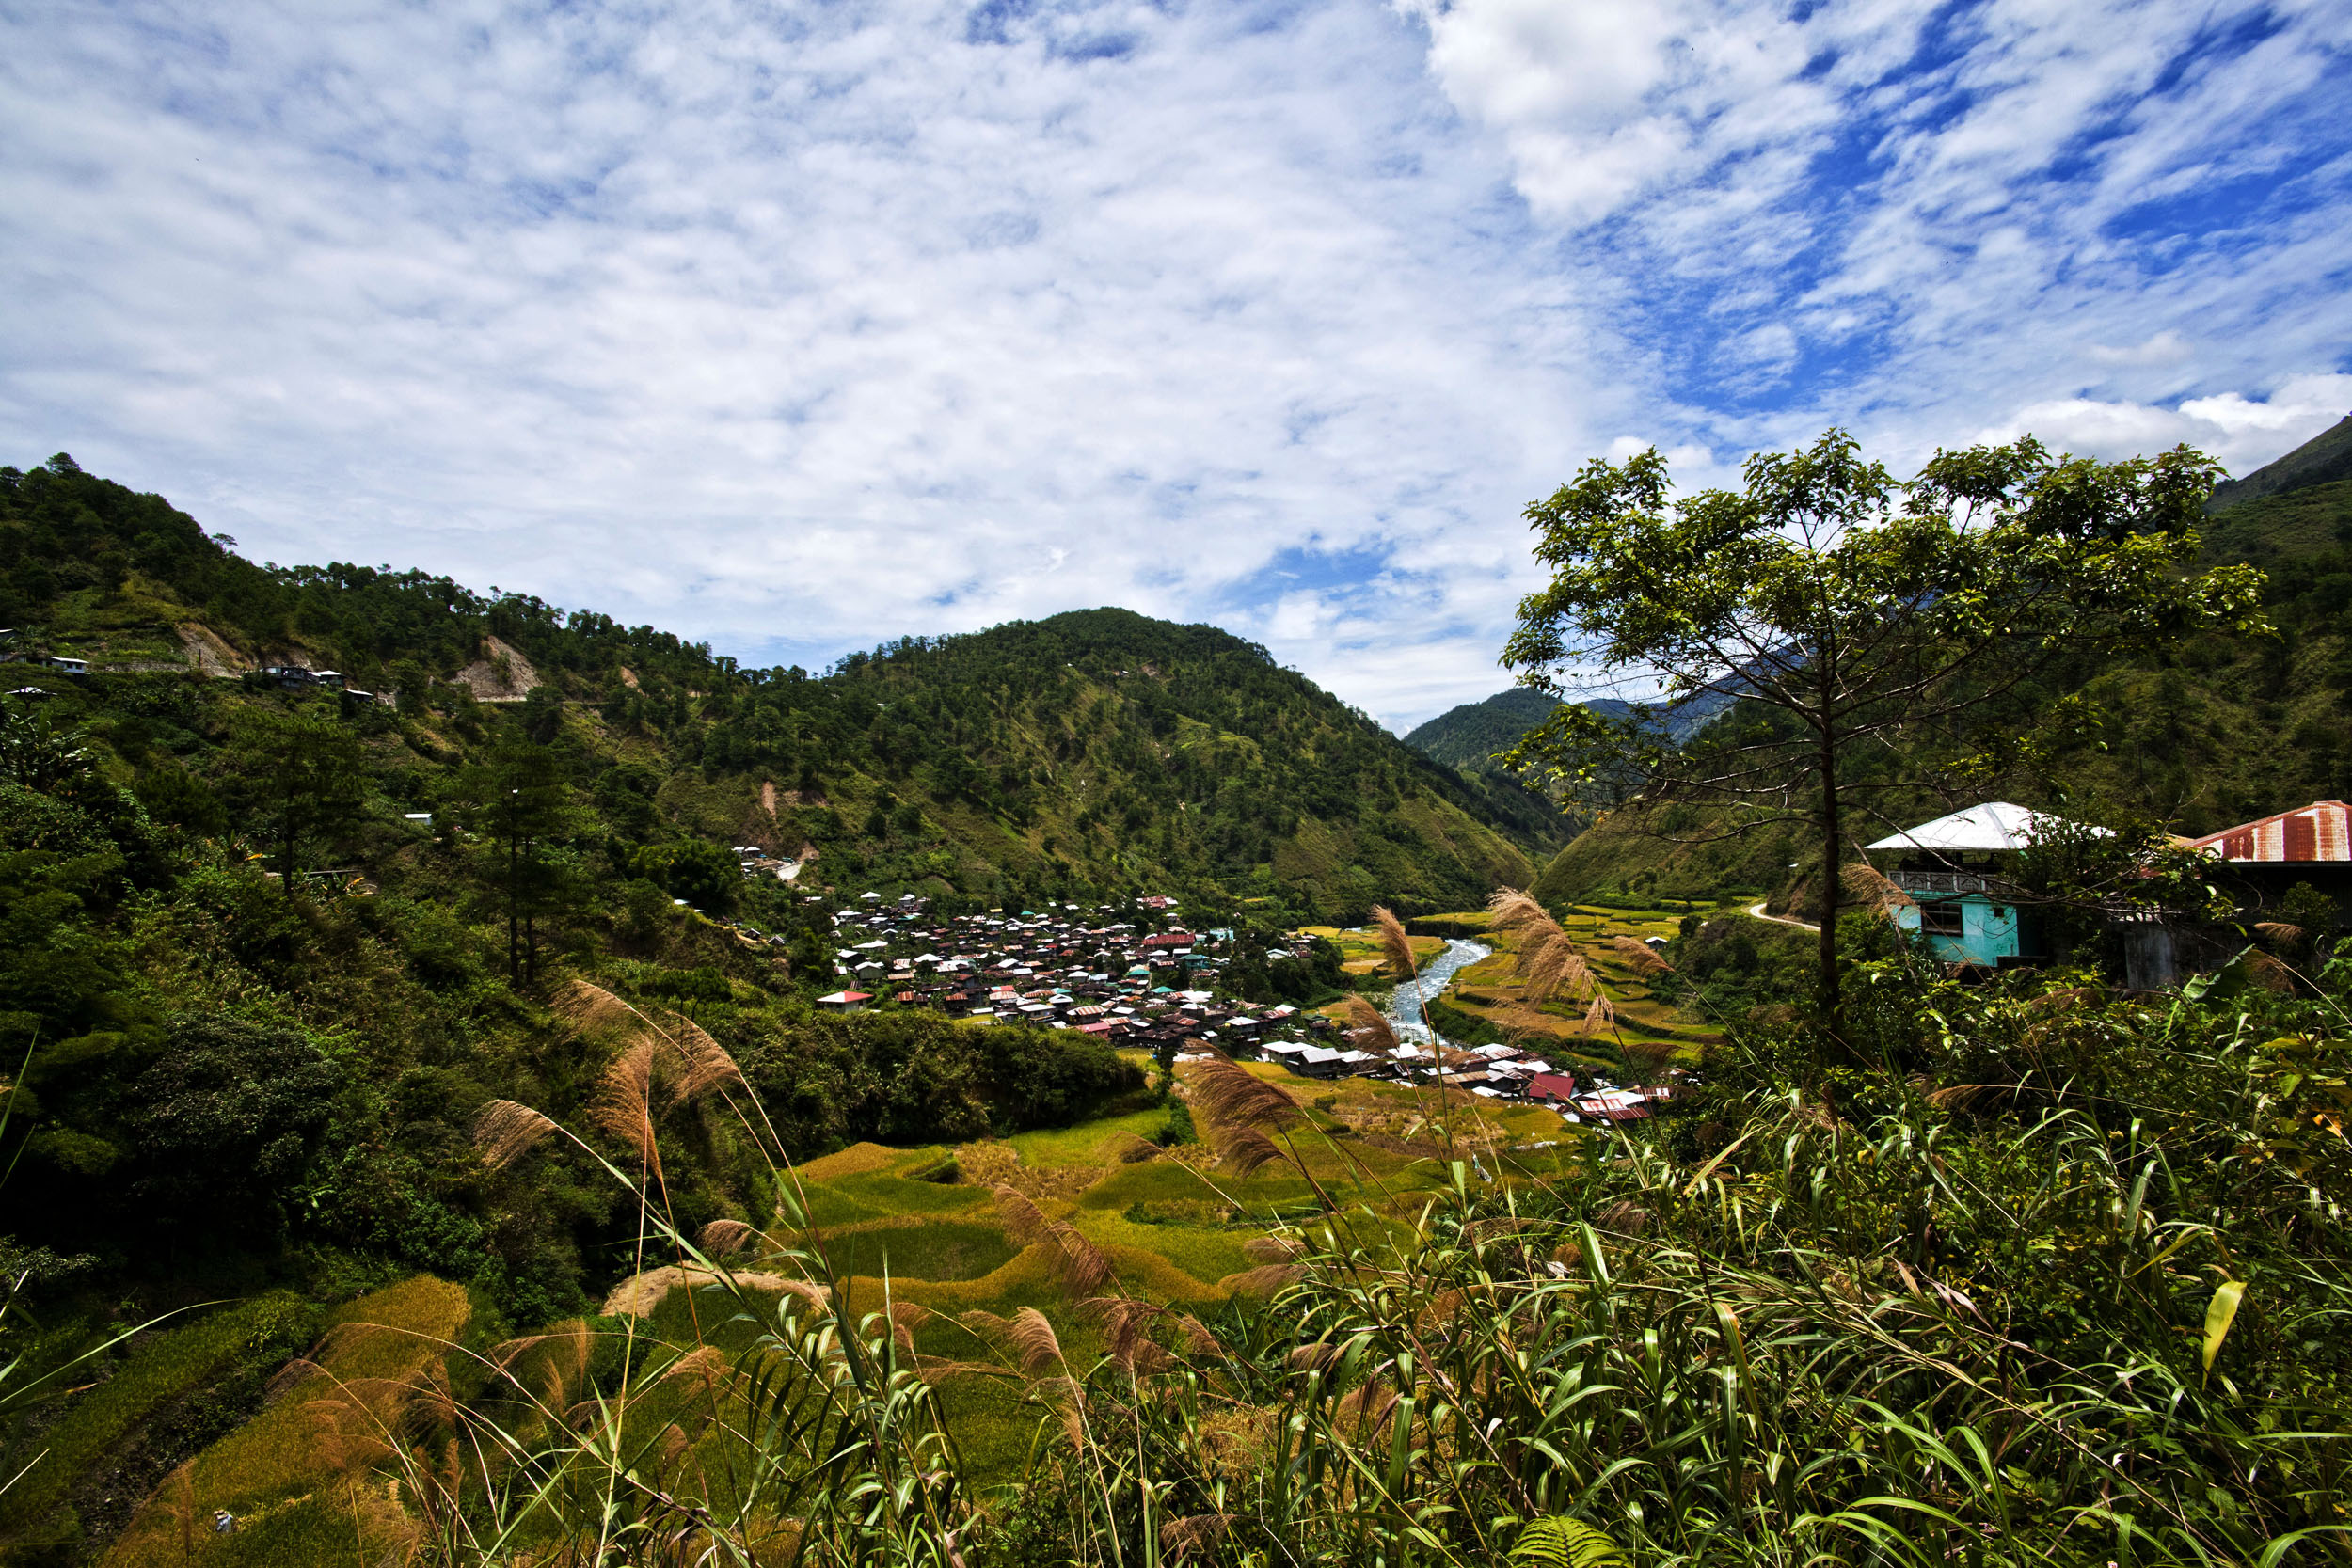 Panoramic views along the Kabayan Rd Halsema Highway from Baguio to Sagada Aug 2011 50